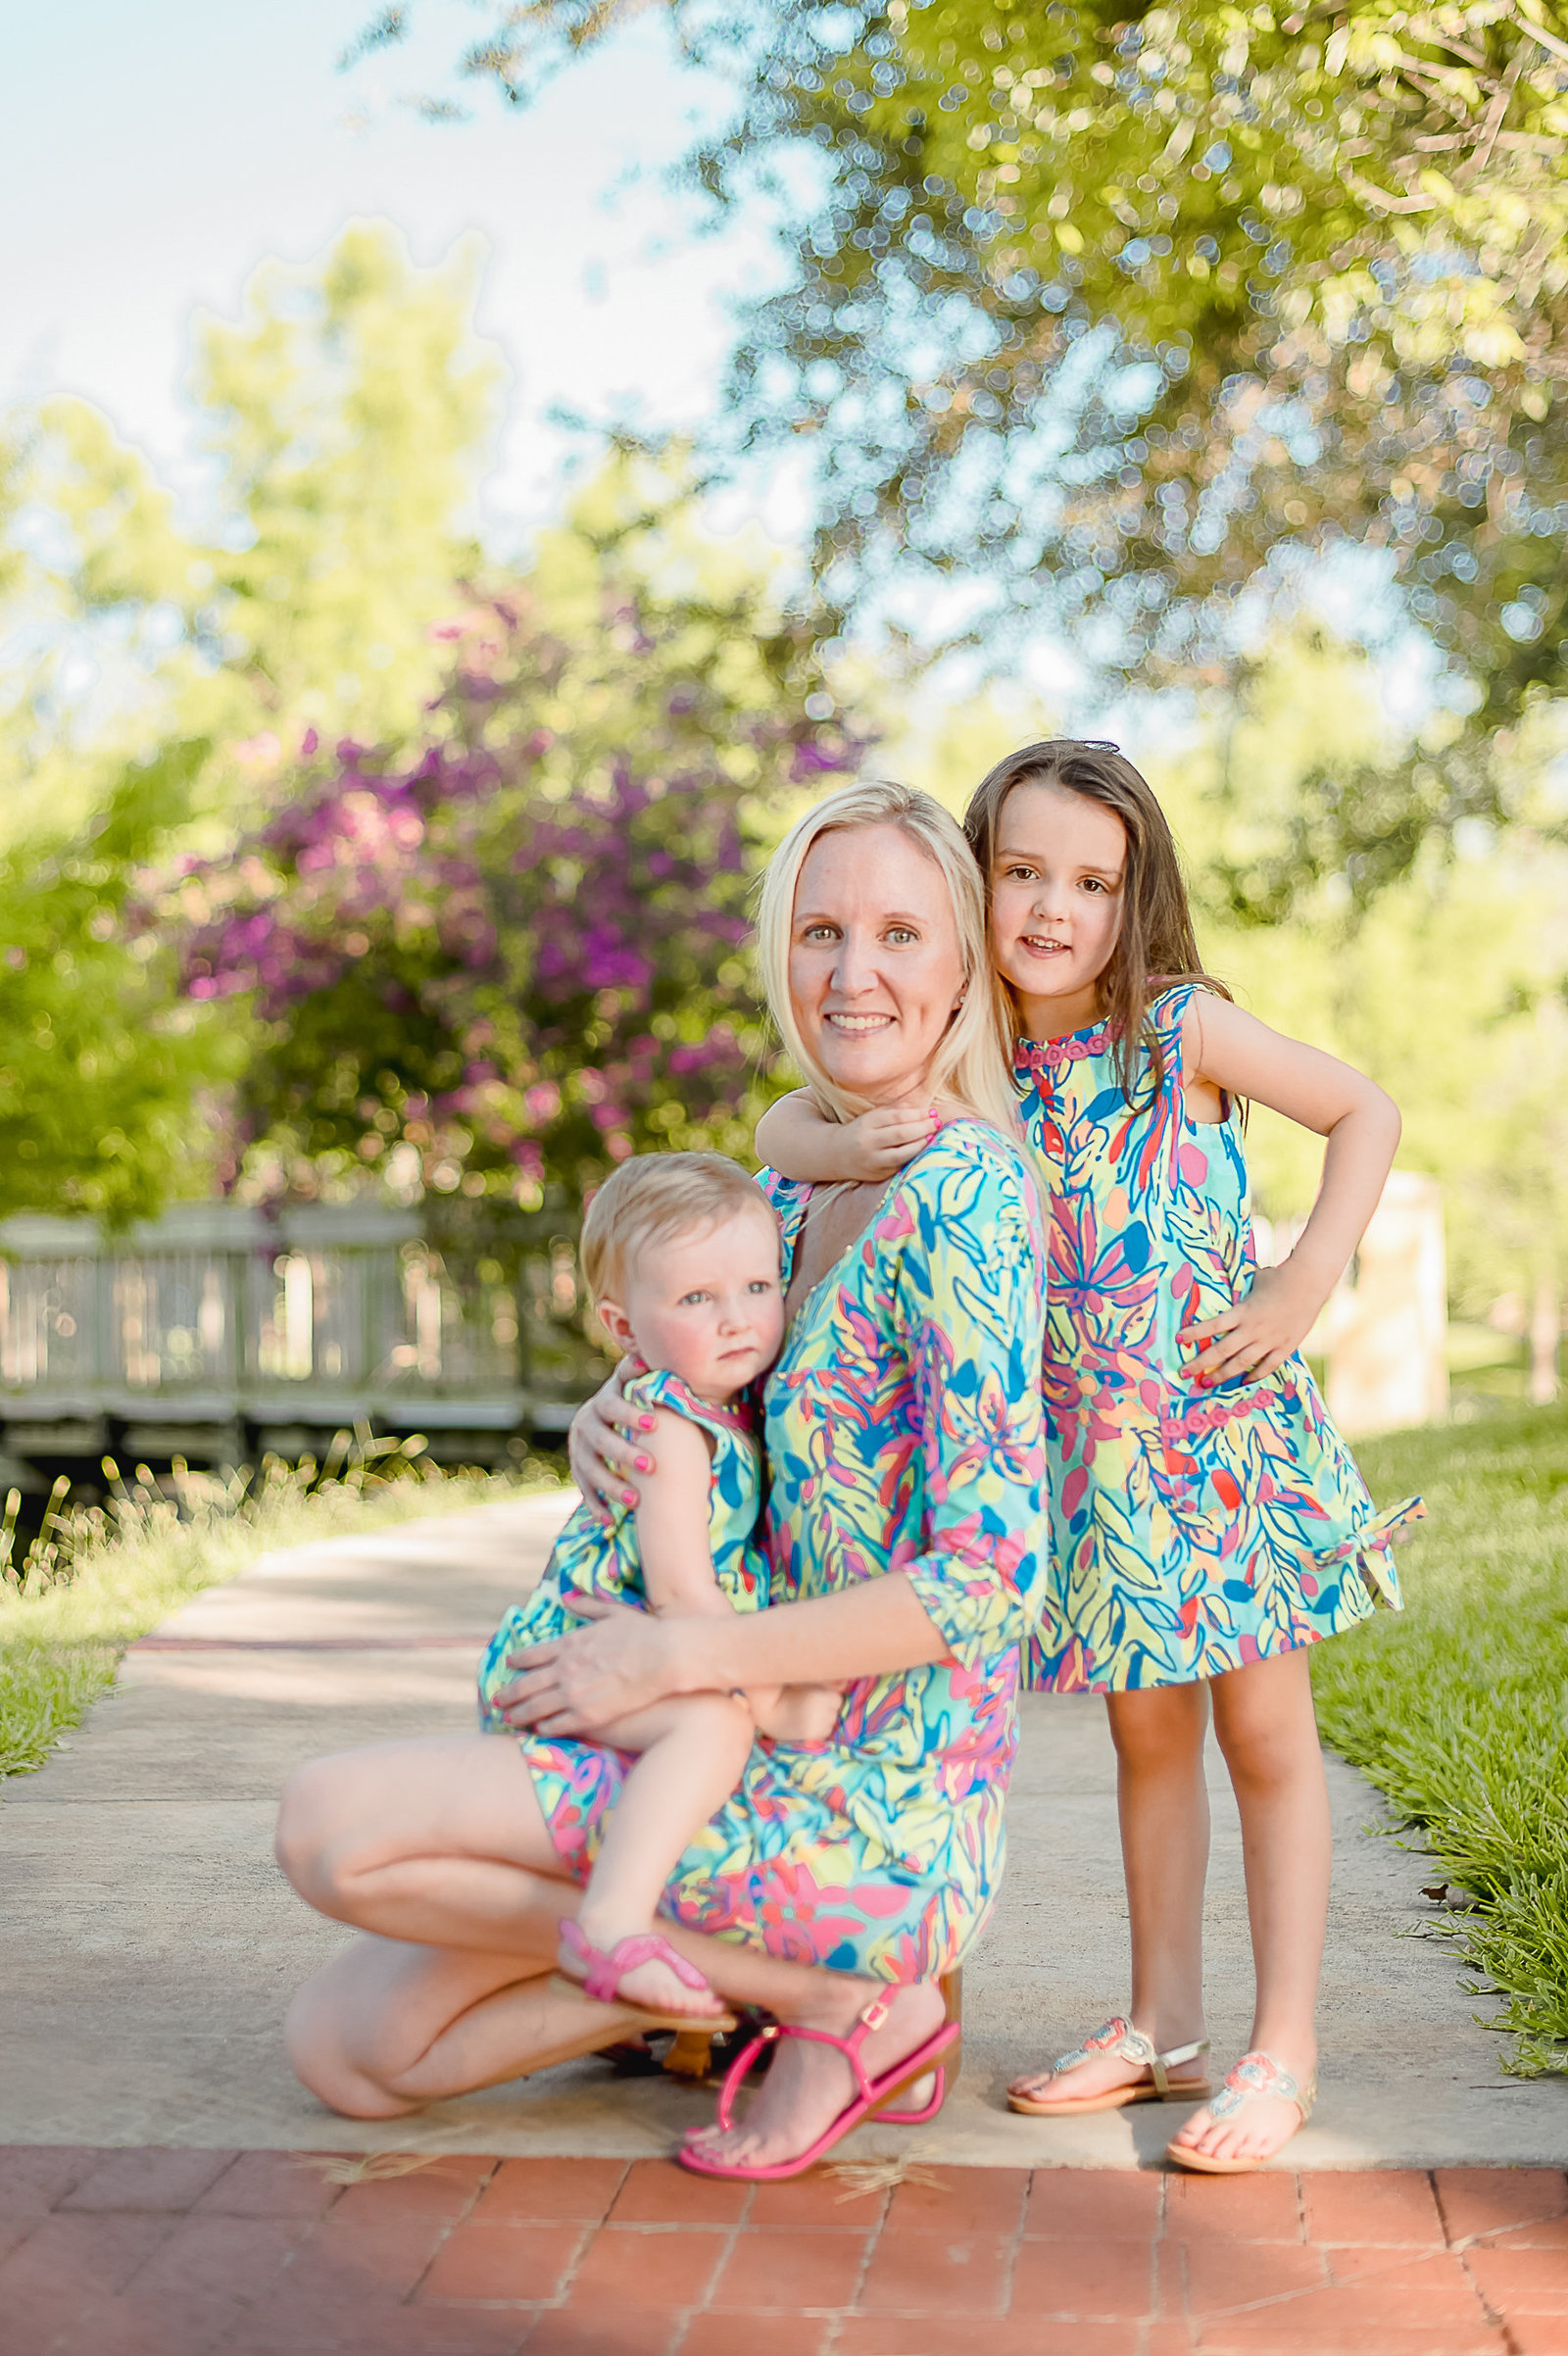 Palm Beach Family Photography by Palm Beach Photography, Inc.